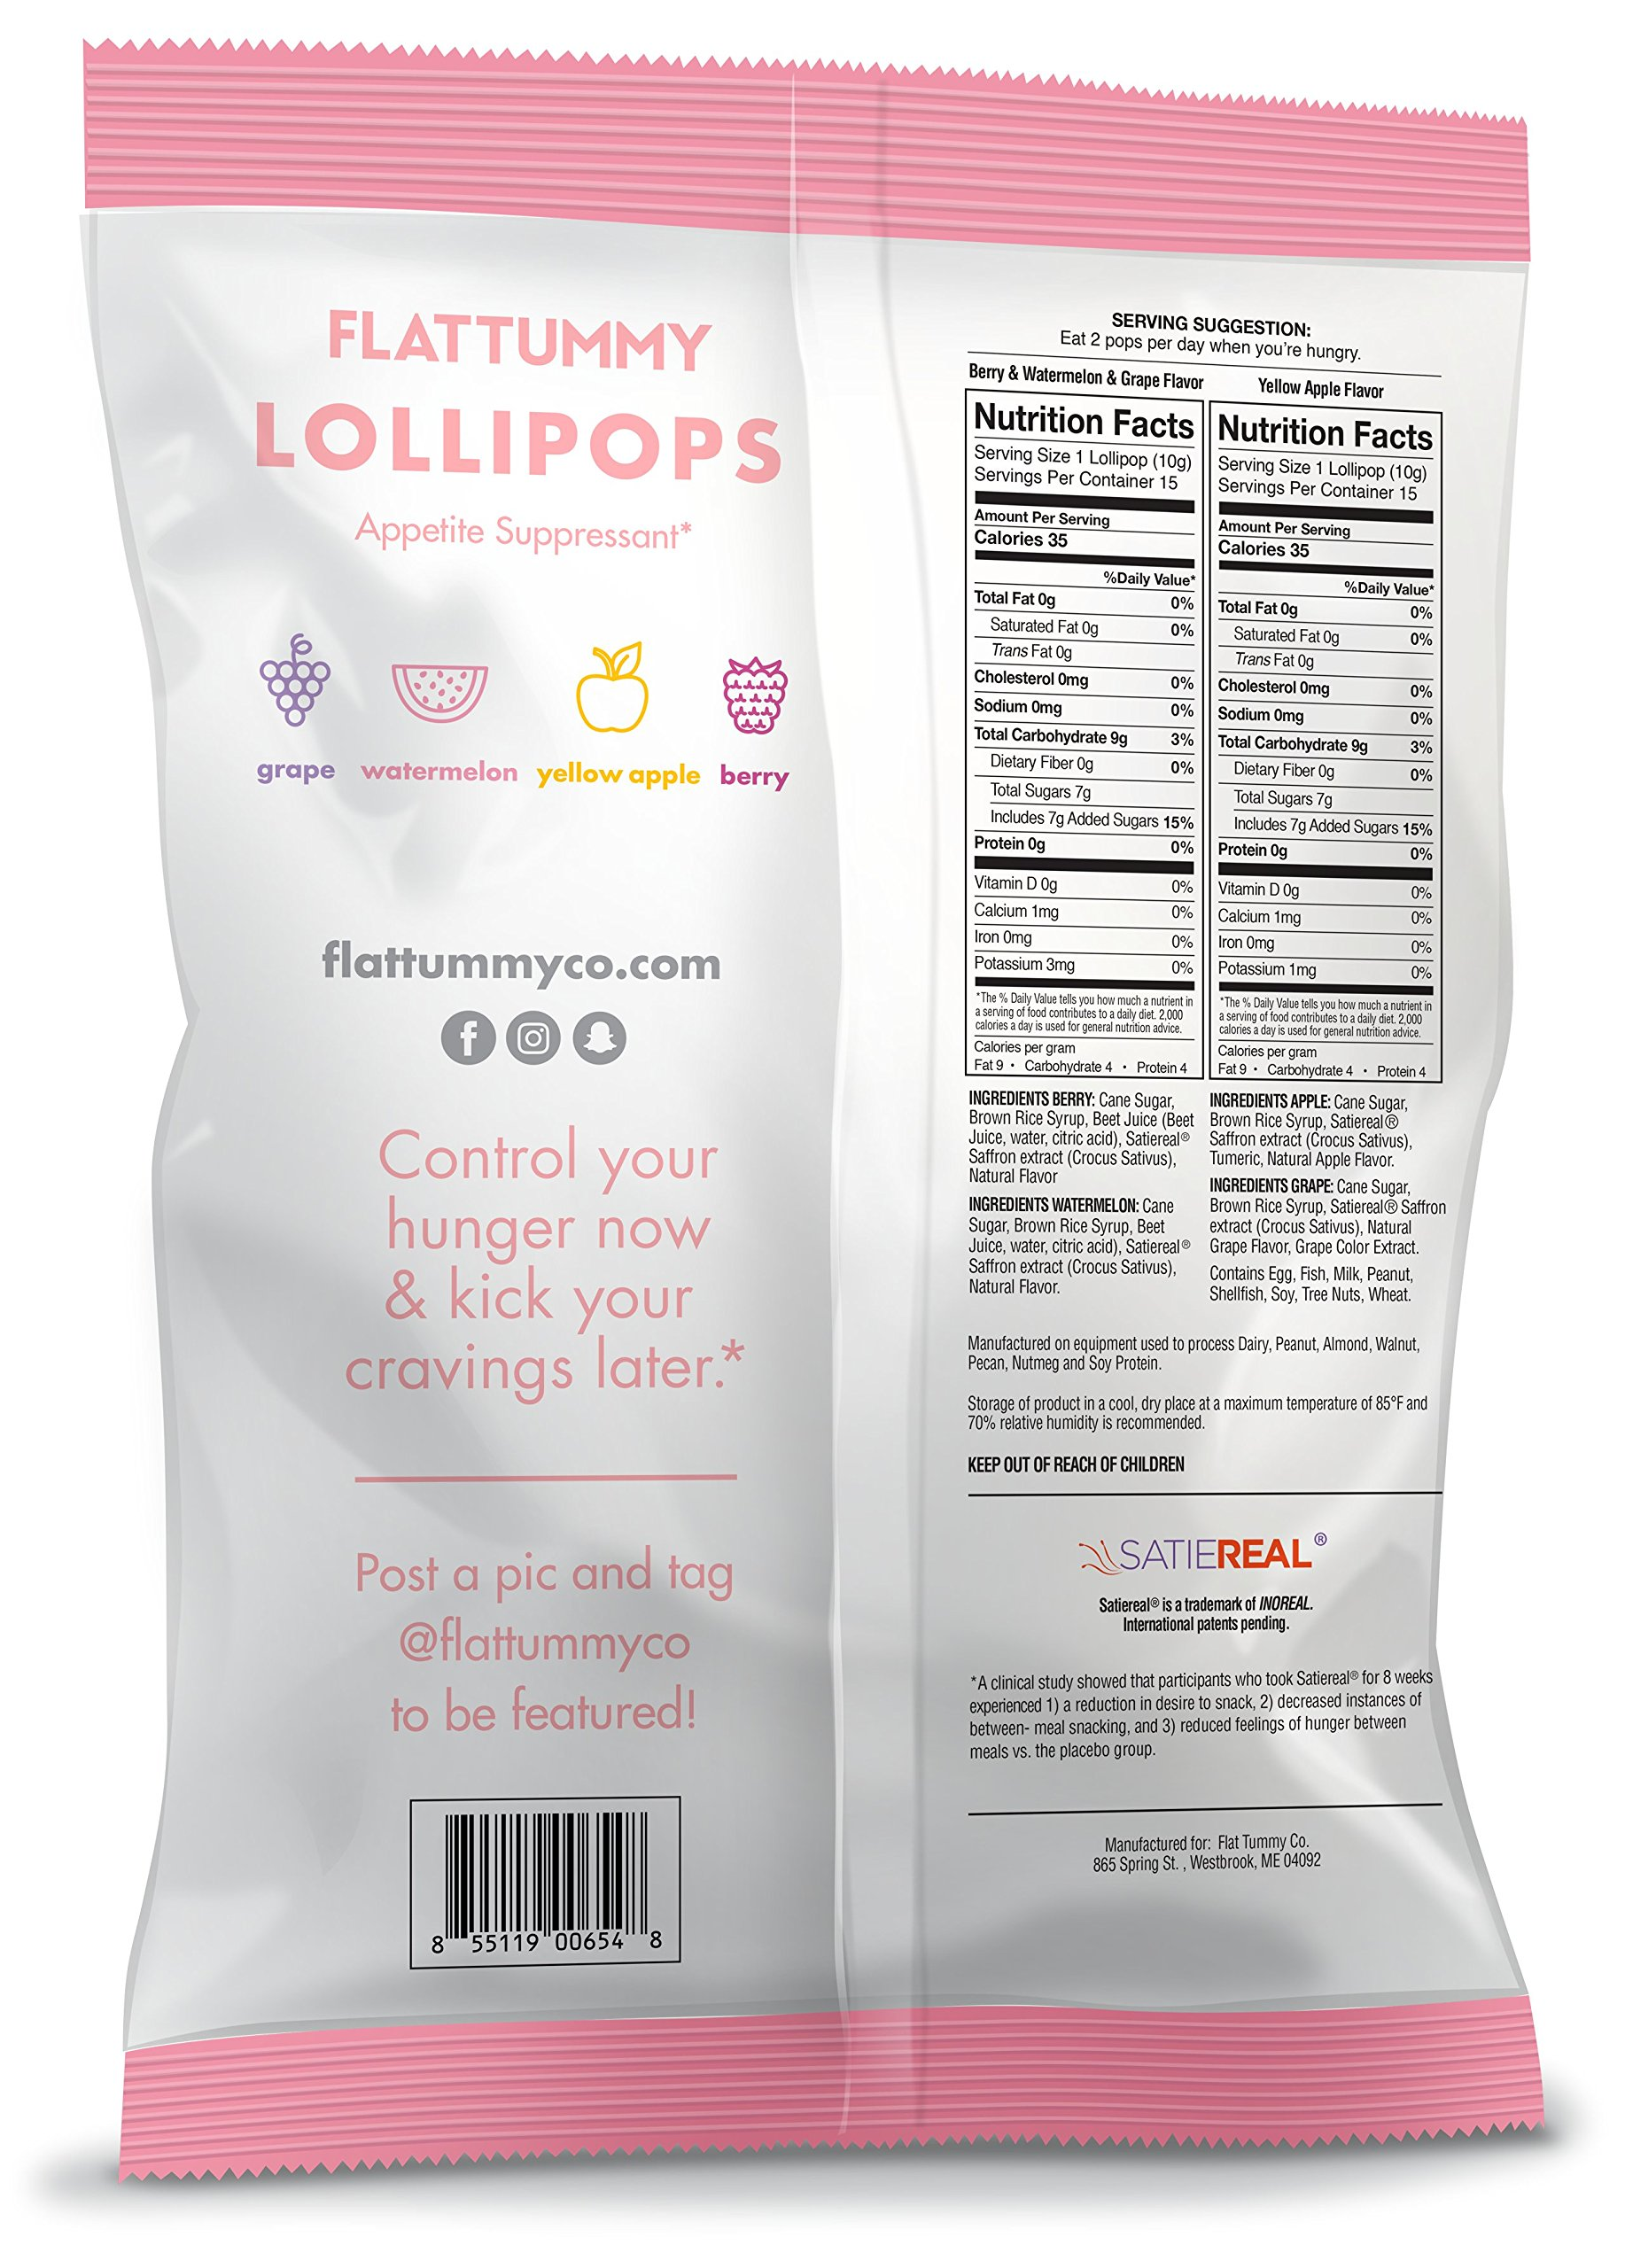 Flat Tummy Appetite Suppressant Lollipops | The Best All Natural Suckers, 4 Great Flavors + Apple, Grape, Watermelon & Berry + Suppress Cravings, The Perfect Low Calorie Diet Candy by Flat Tummy Co. (Image #3)